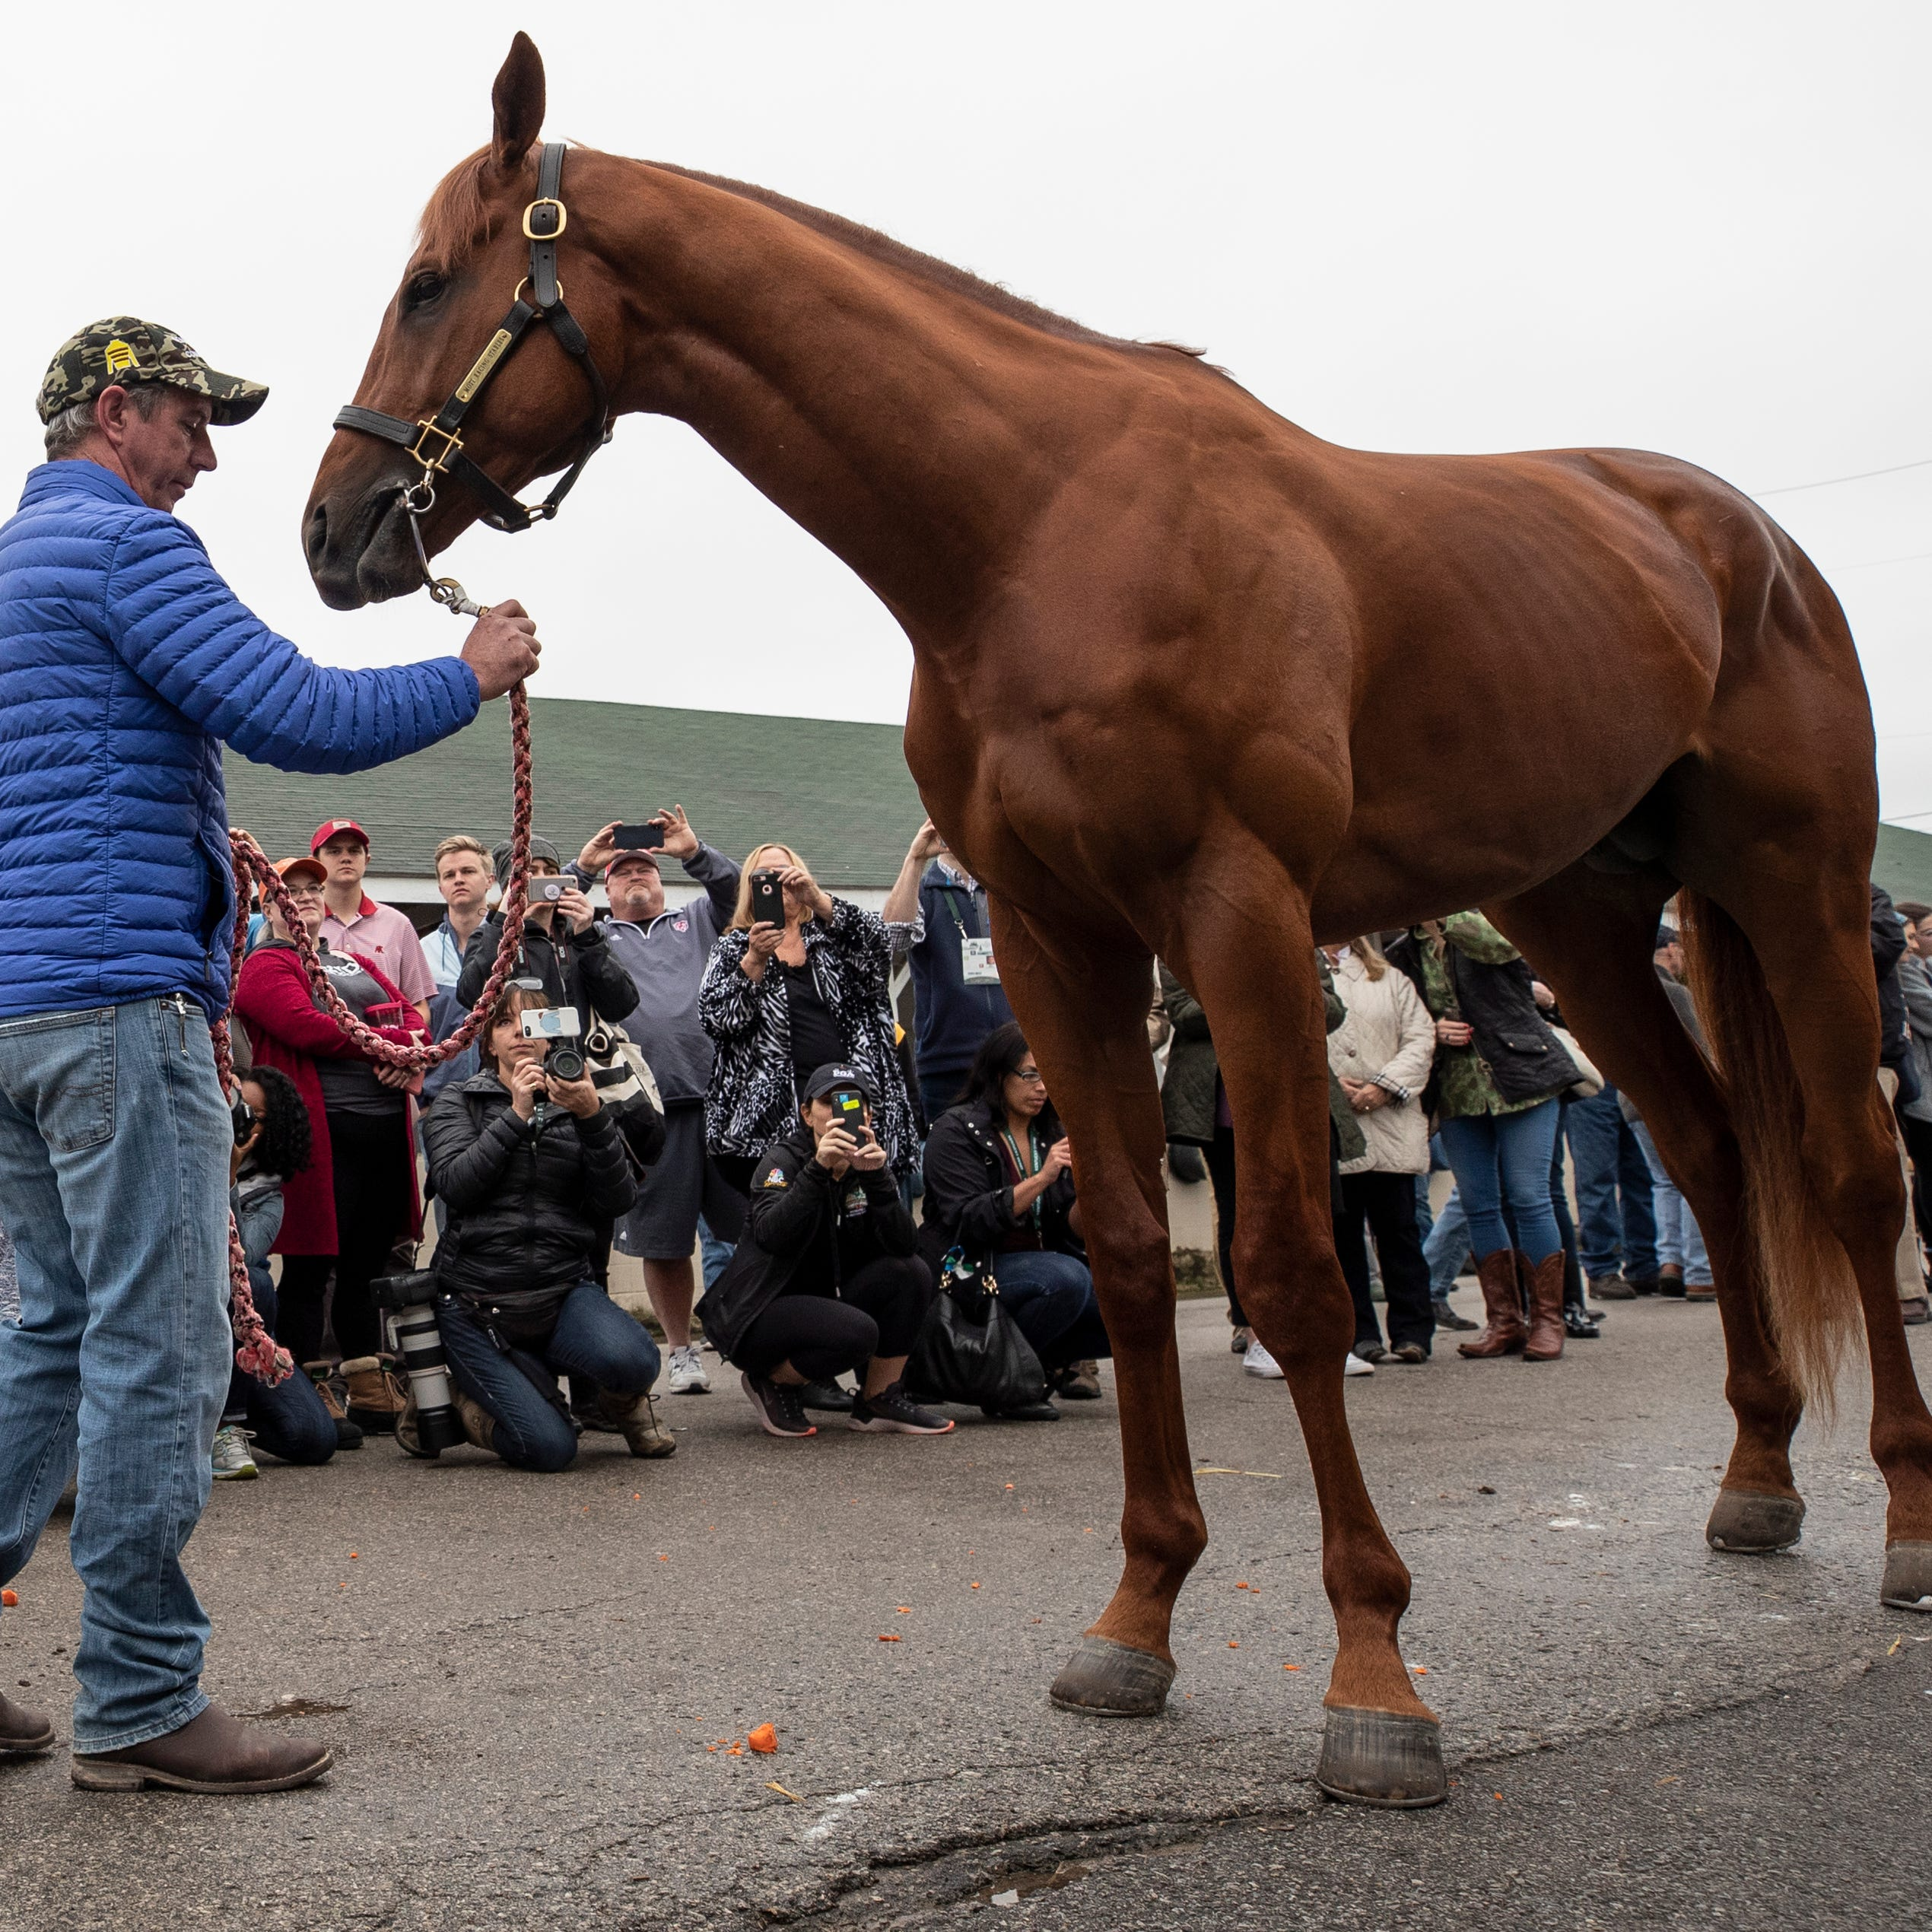 Kentucky Derby winner Country House is not racing in the 2019 Preakness, report says